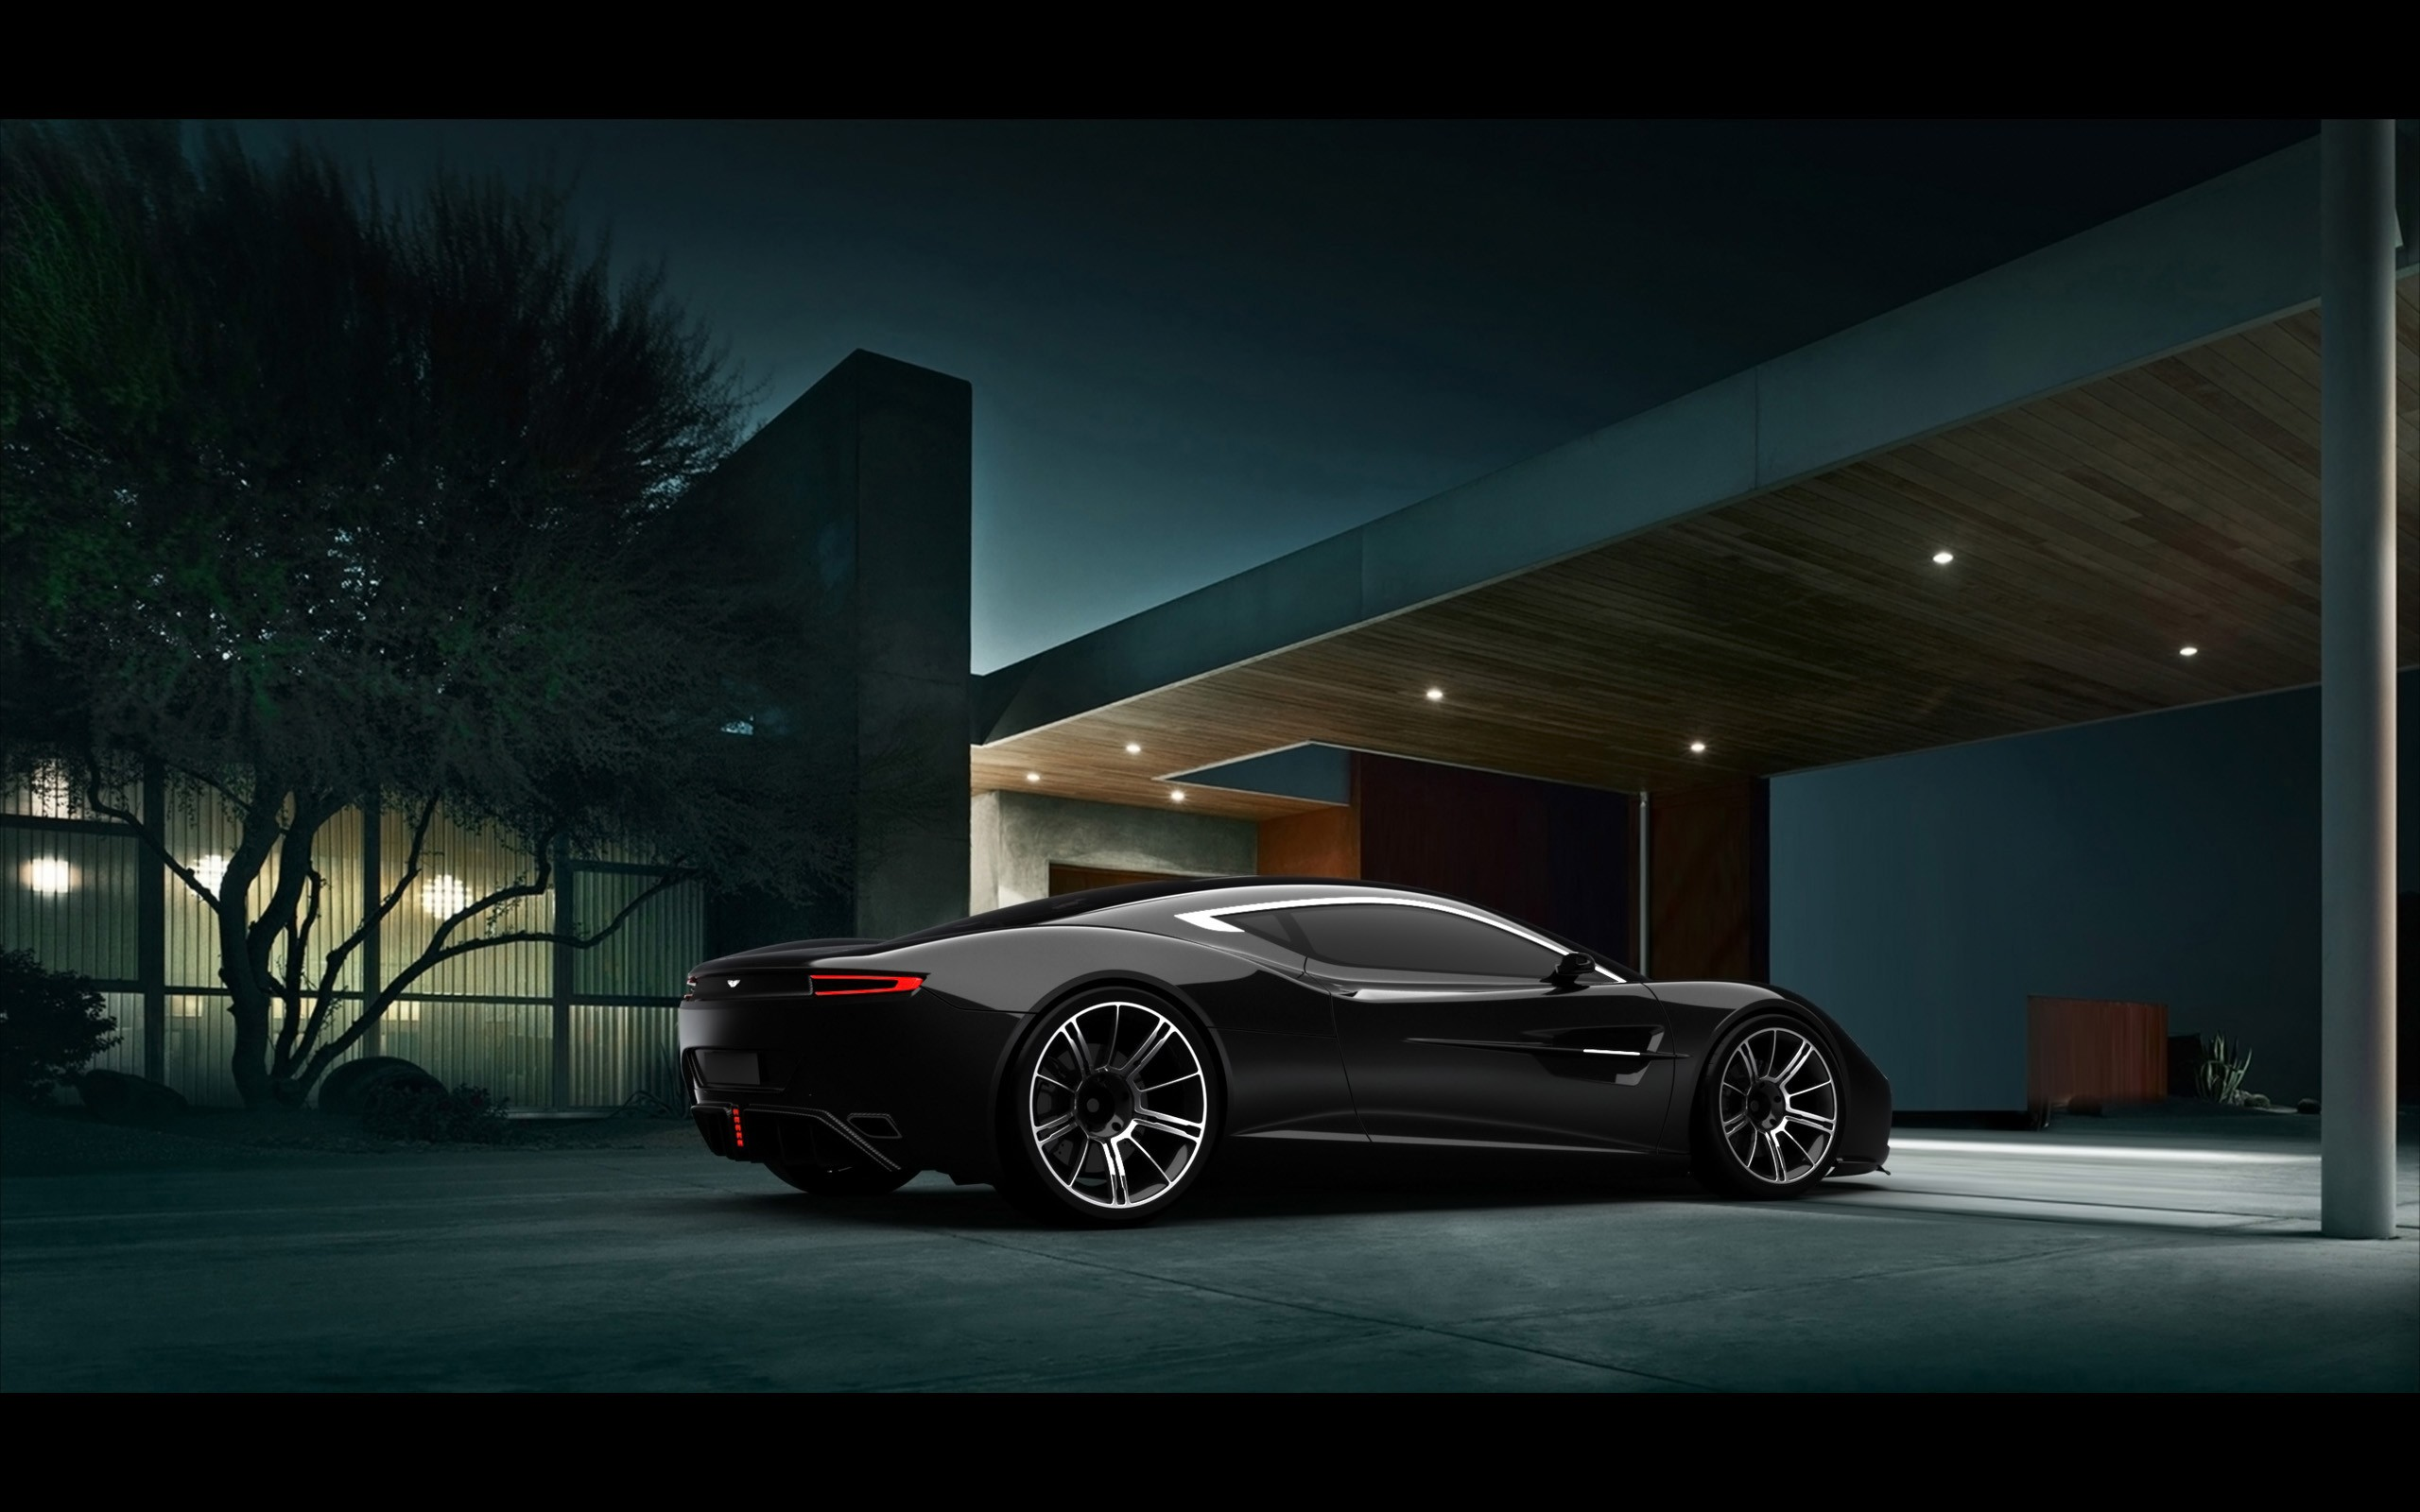 cars design black cars lifestyle Aston Martin DBC Wallpapers 2560x1600